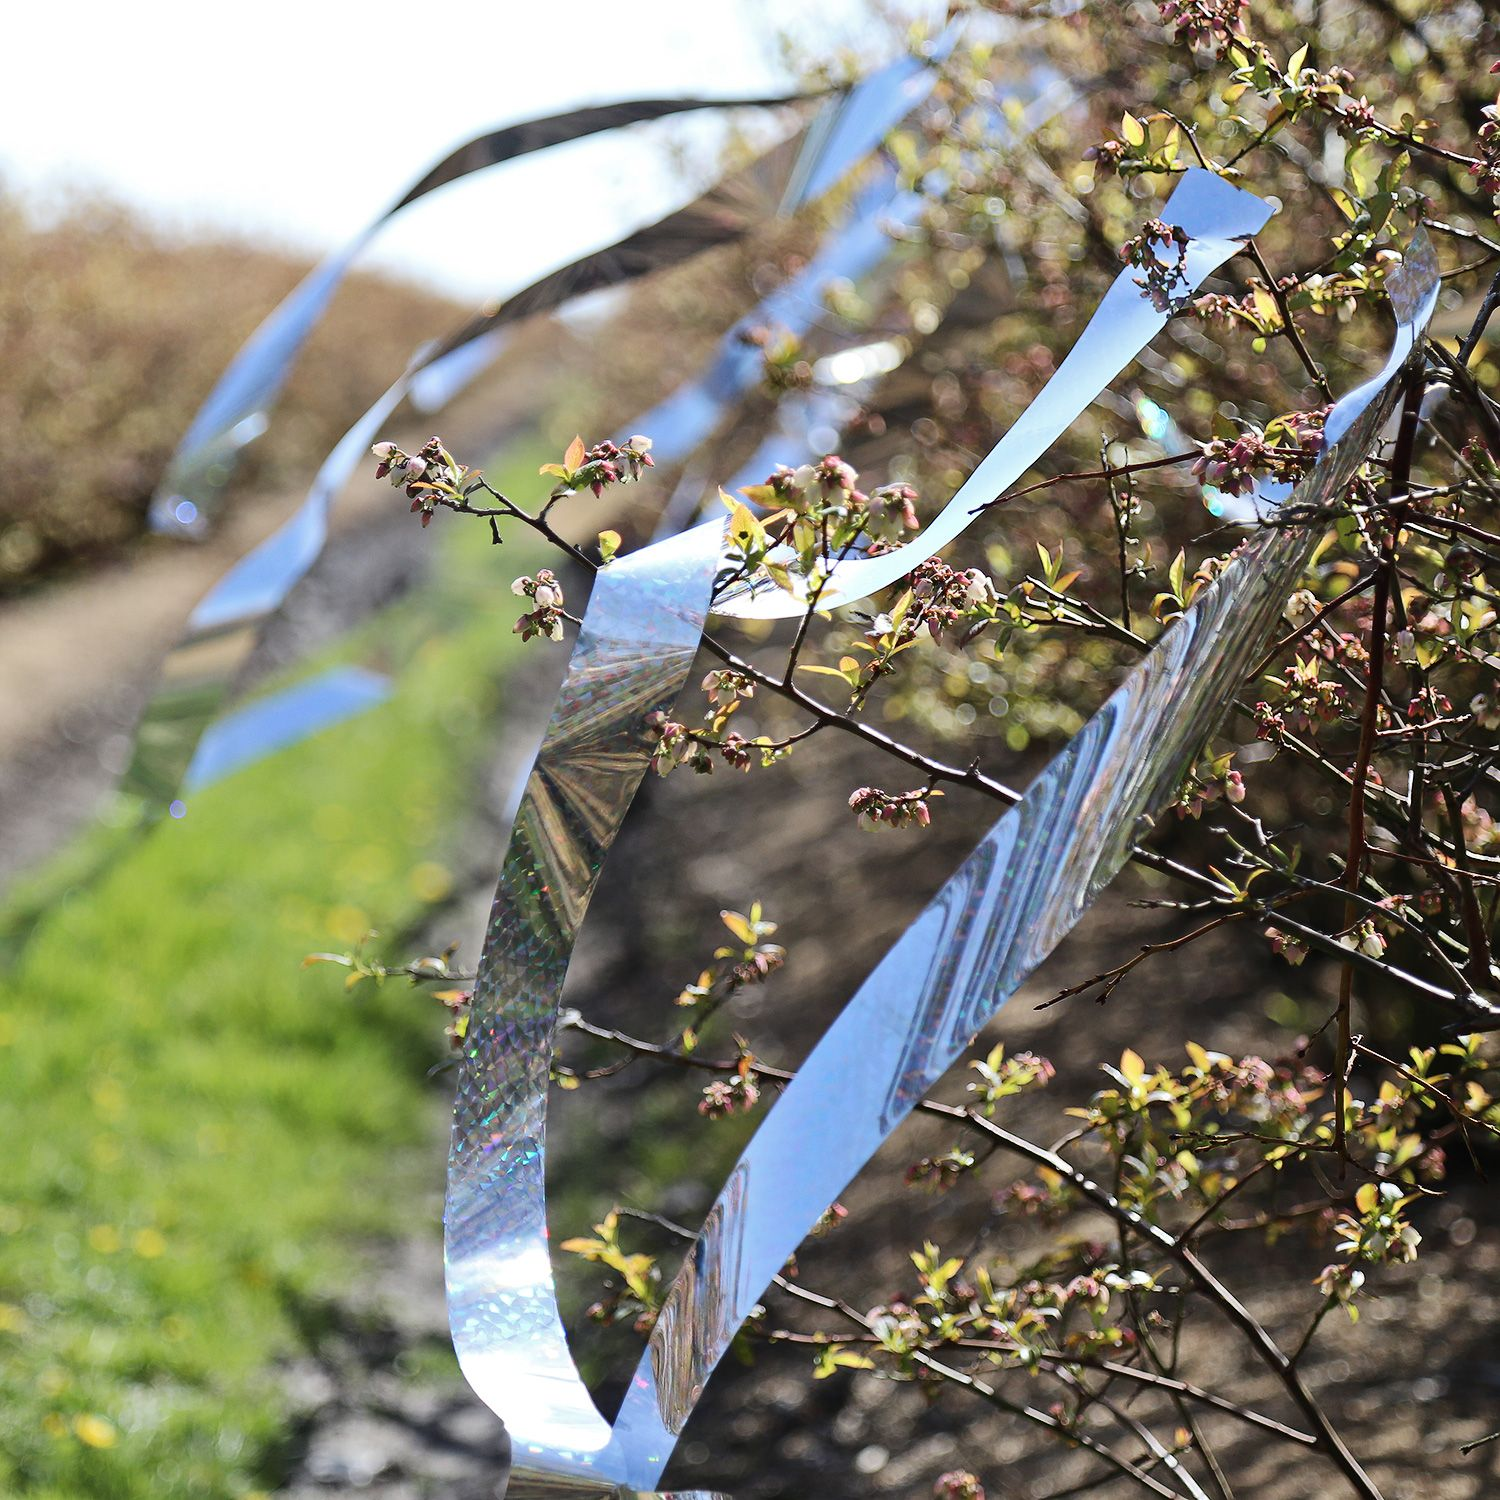 Bird Repellent Tape Creates A Visual Annoyance Zone To Keep Pest Birds Away From Gardens